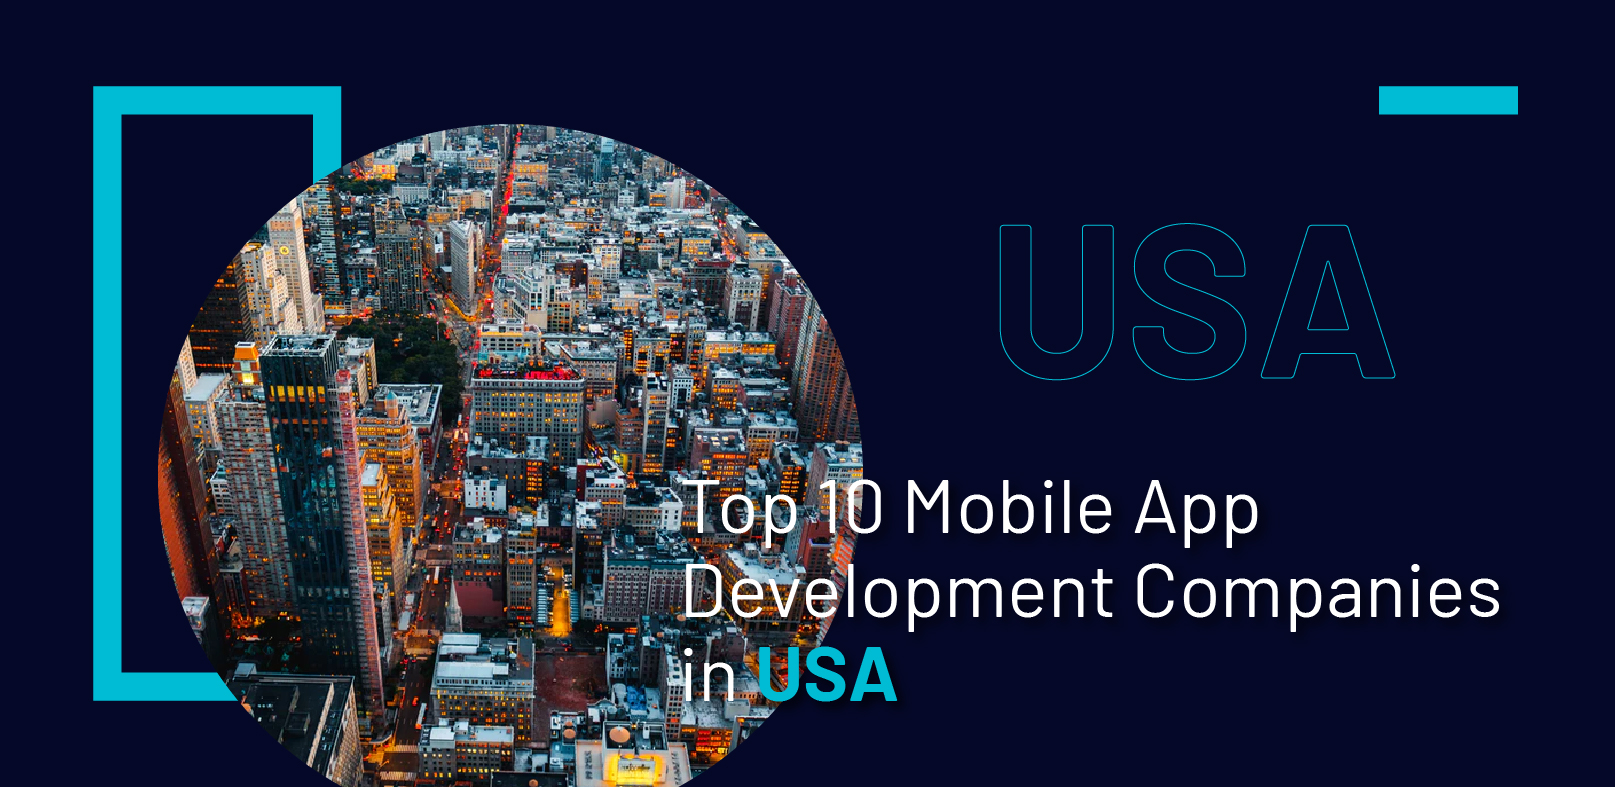 Top Mobile App Development Company in USA - WebClues Infotech